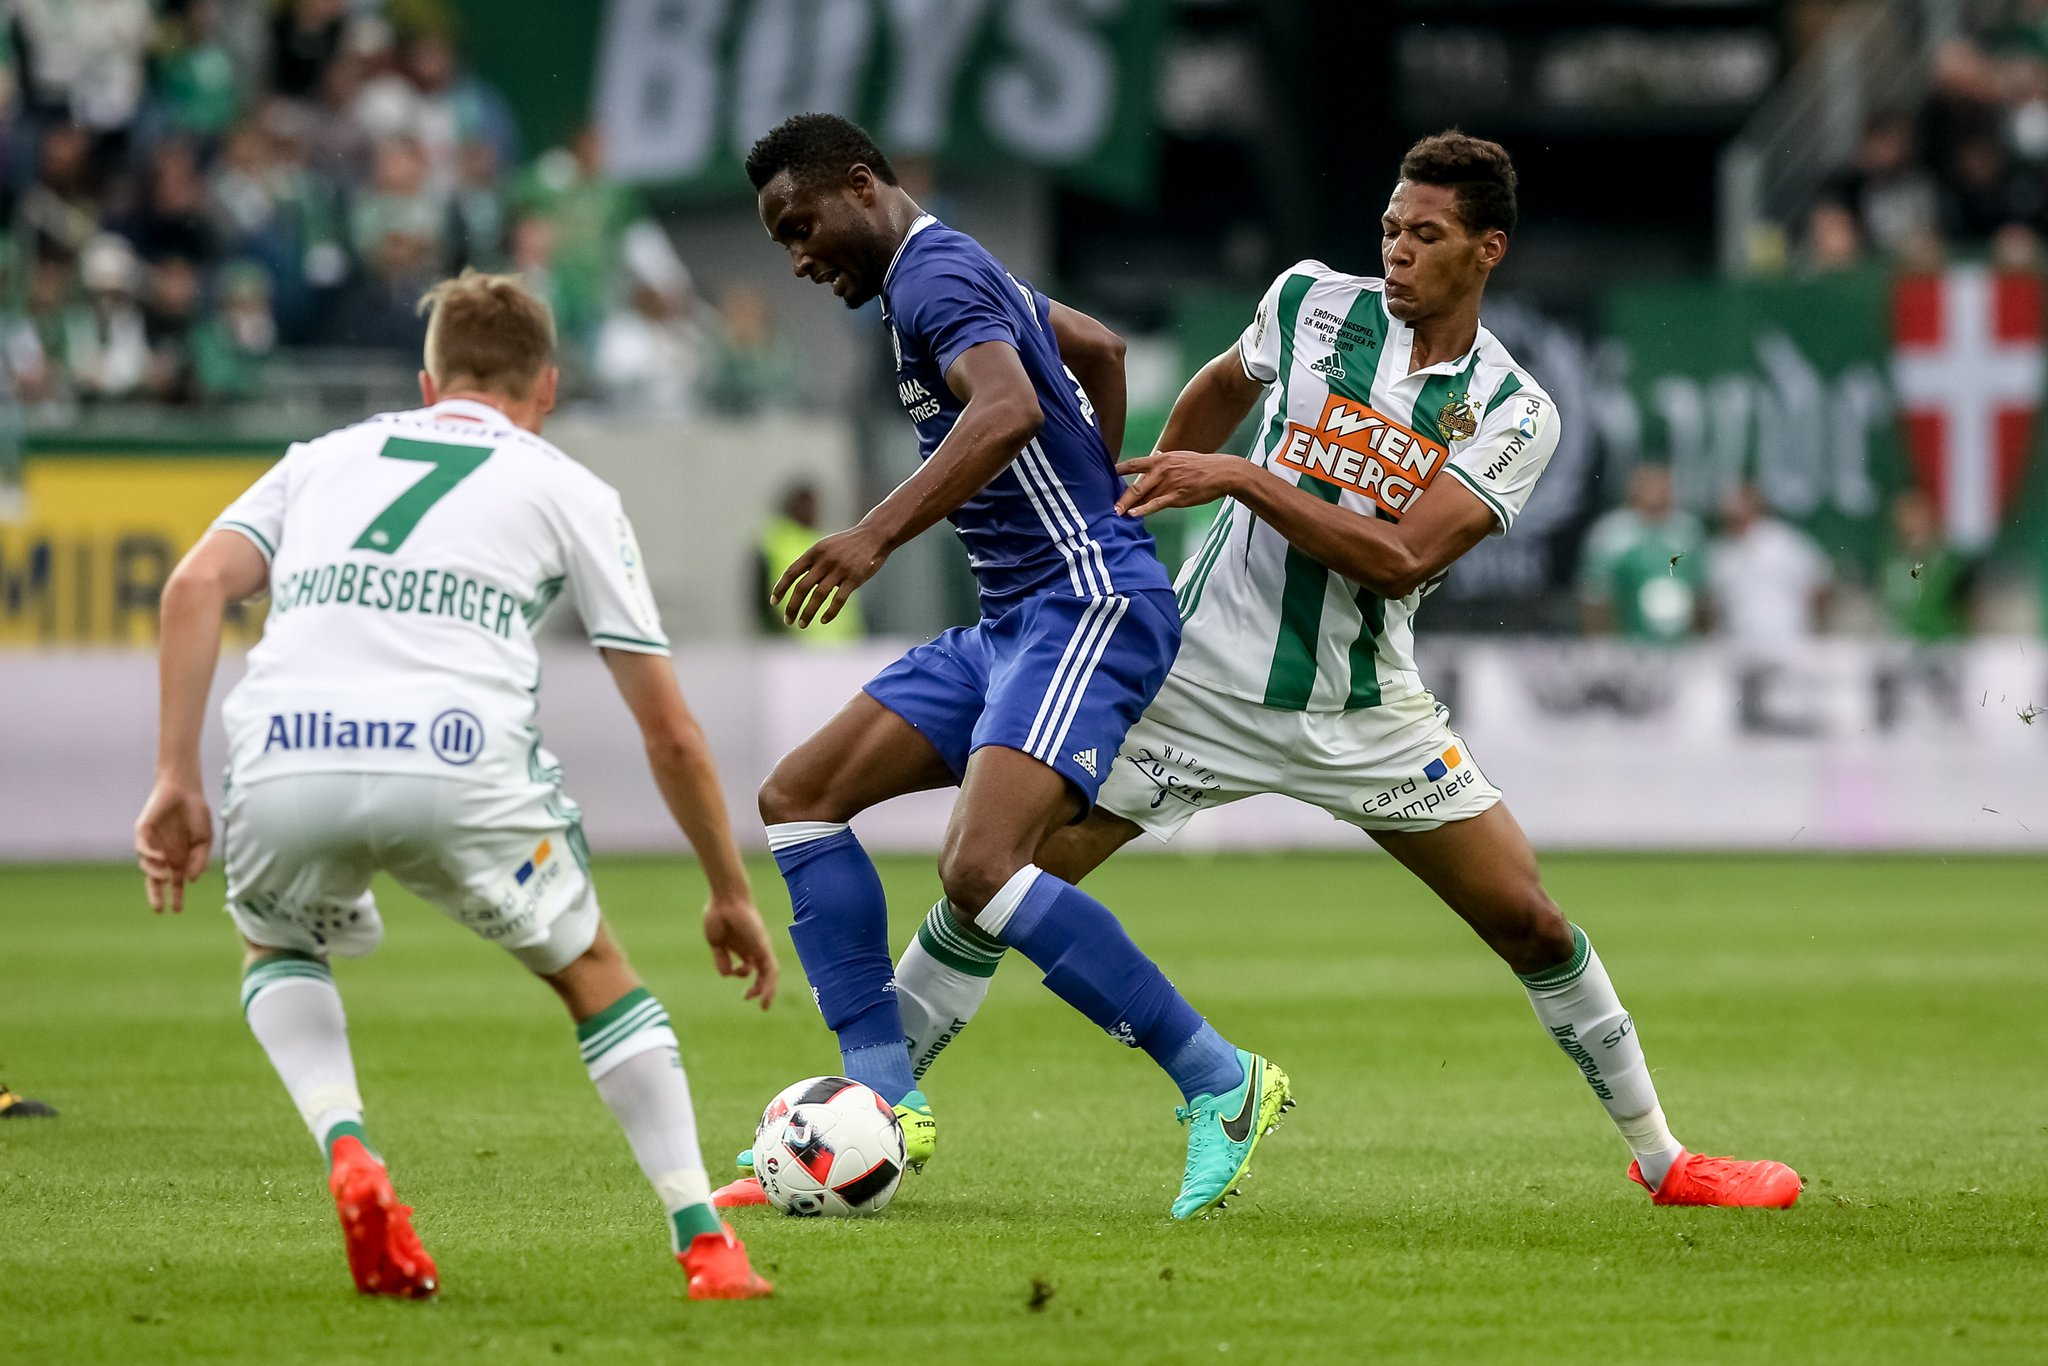 Moses Shines, Mikel Struggles As Conte Loses Chelsea Debut